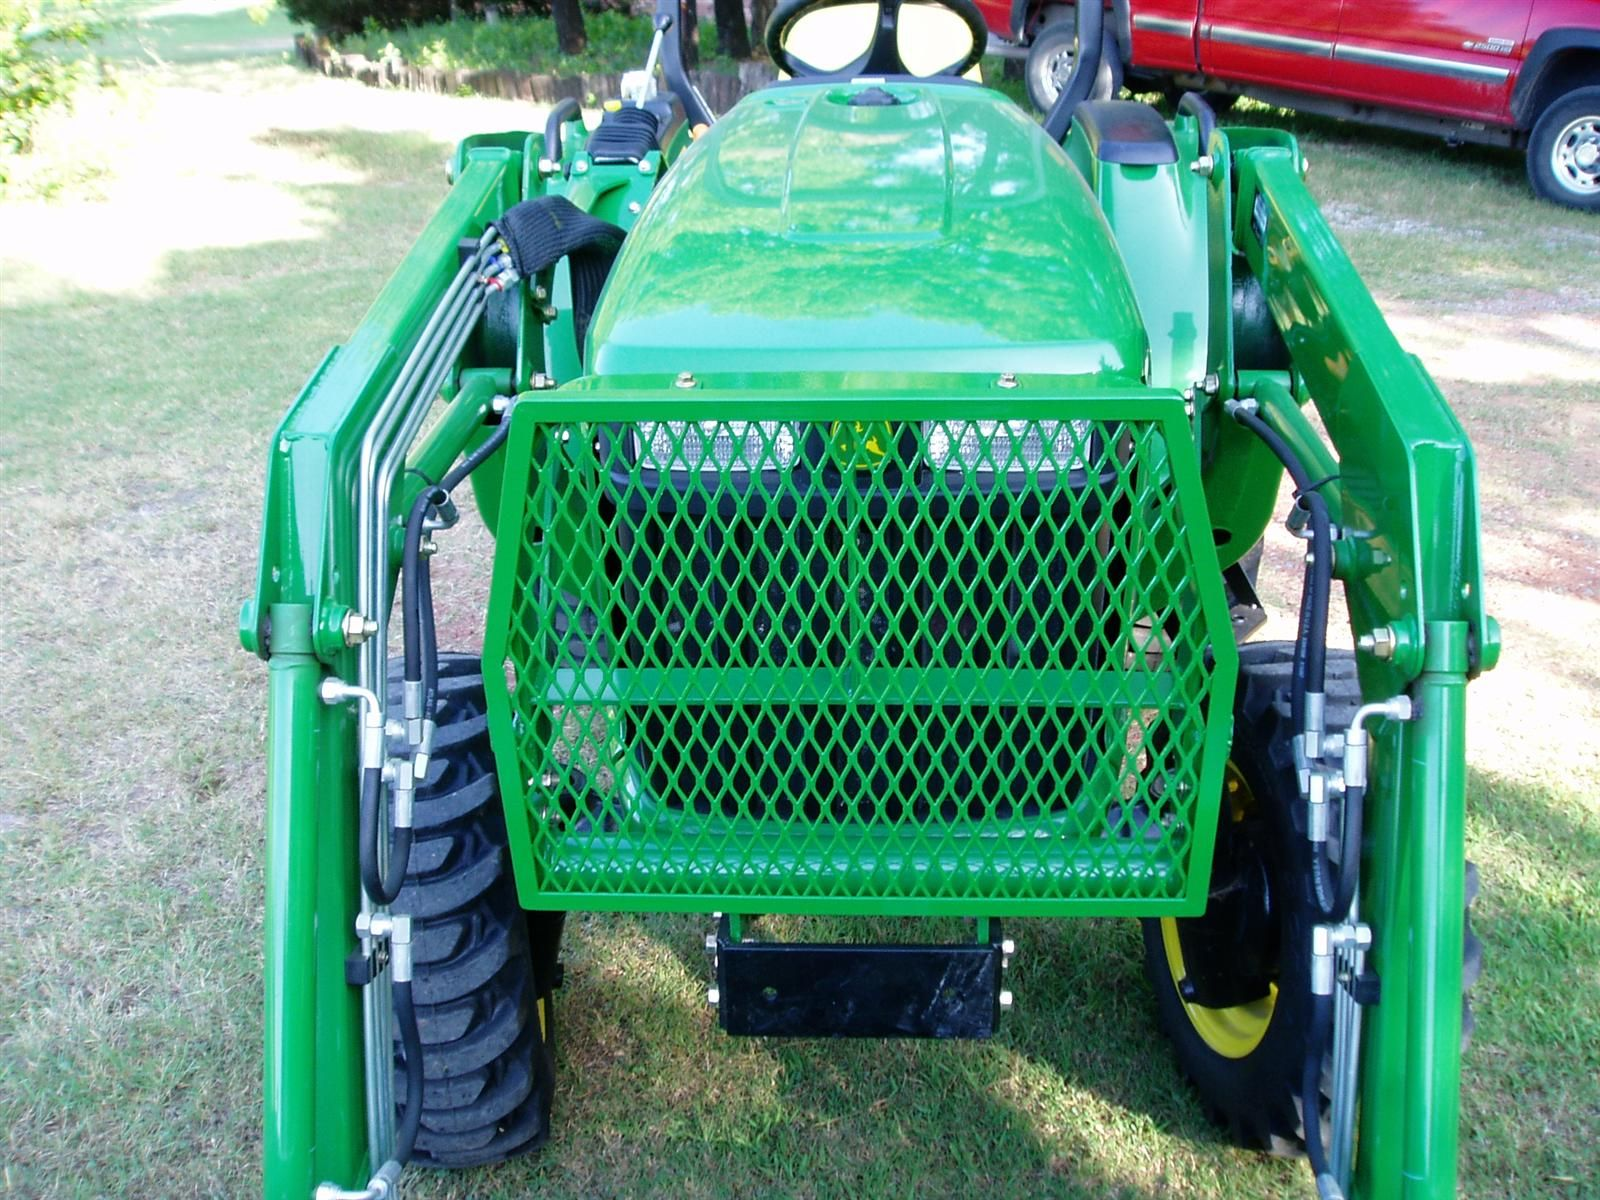 Pin By Roy Mellor On Tractor Ideas In 2019 Tractors